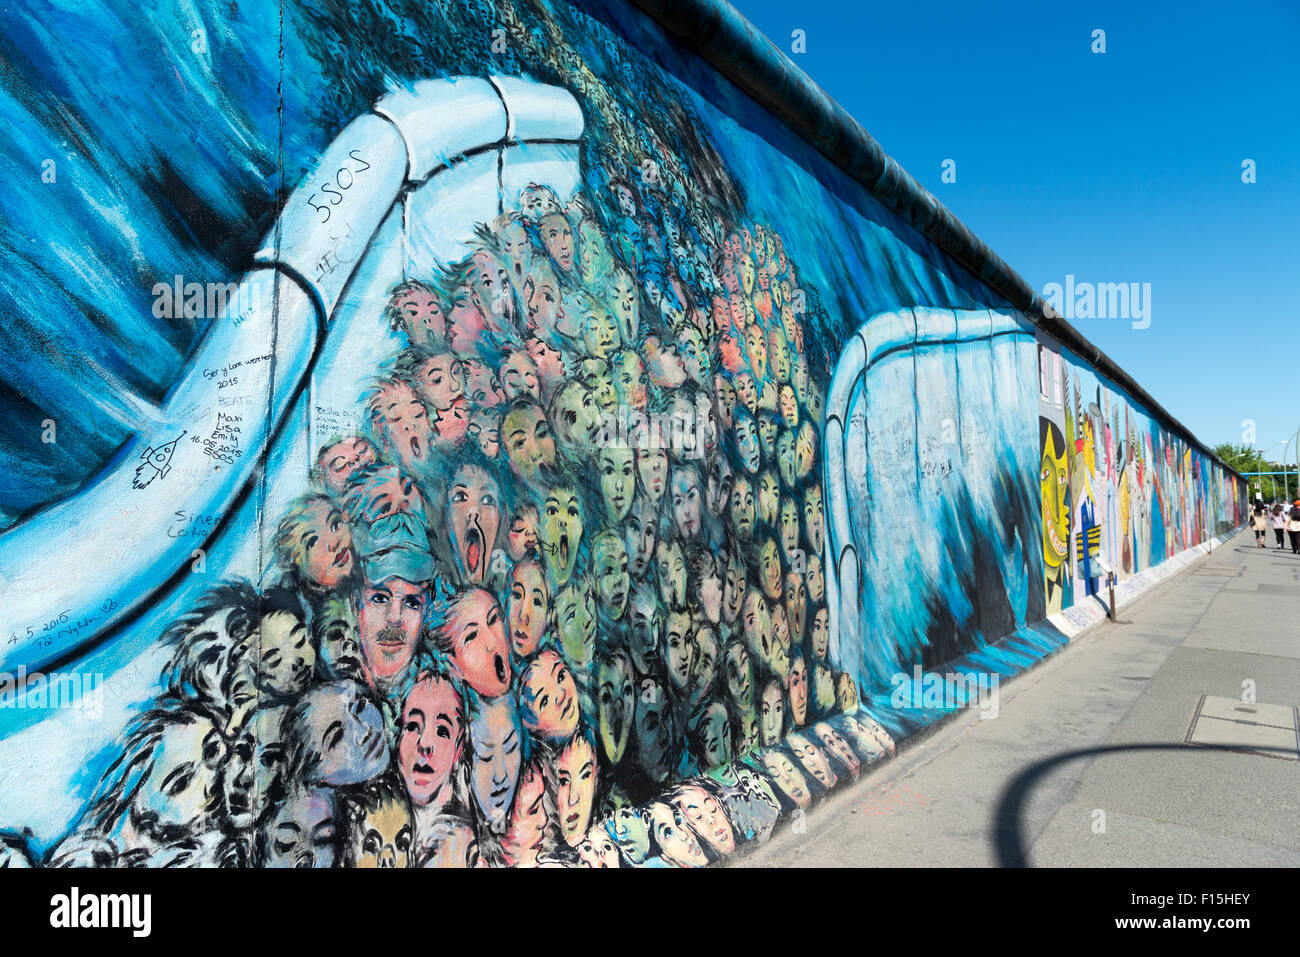 Le mur de Berlin East Side Gallery, Berlin, Allemagne Photo Stock